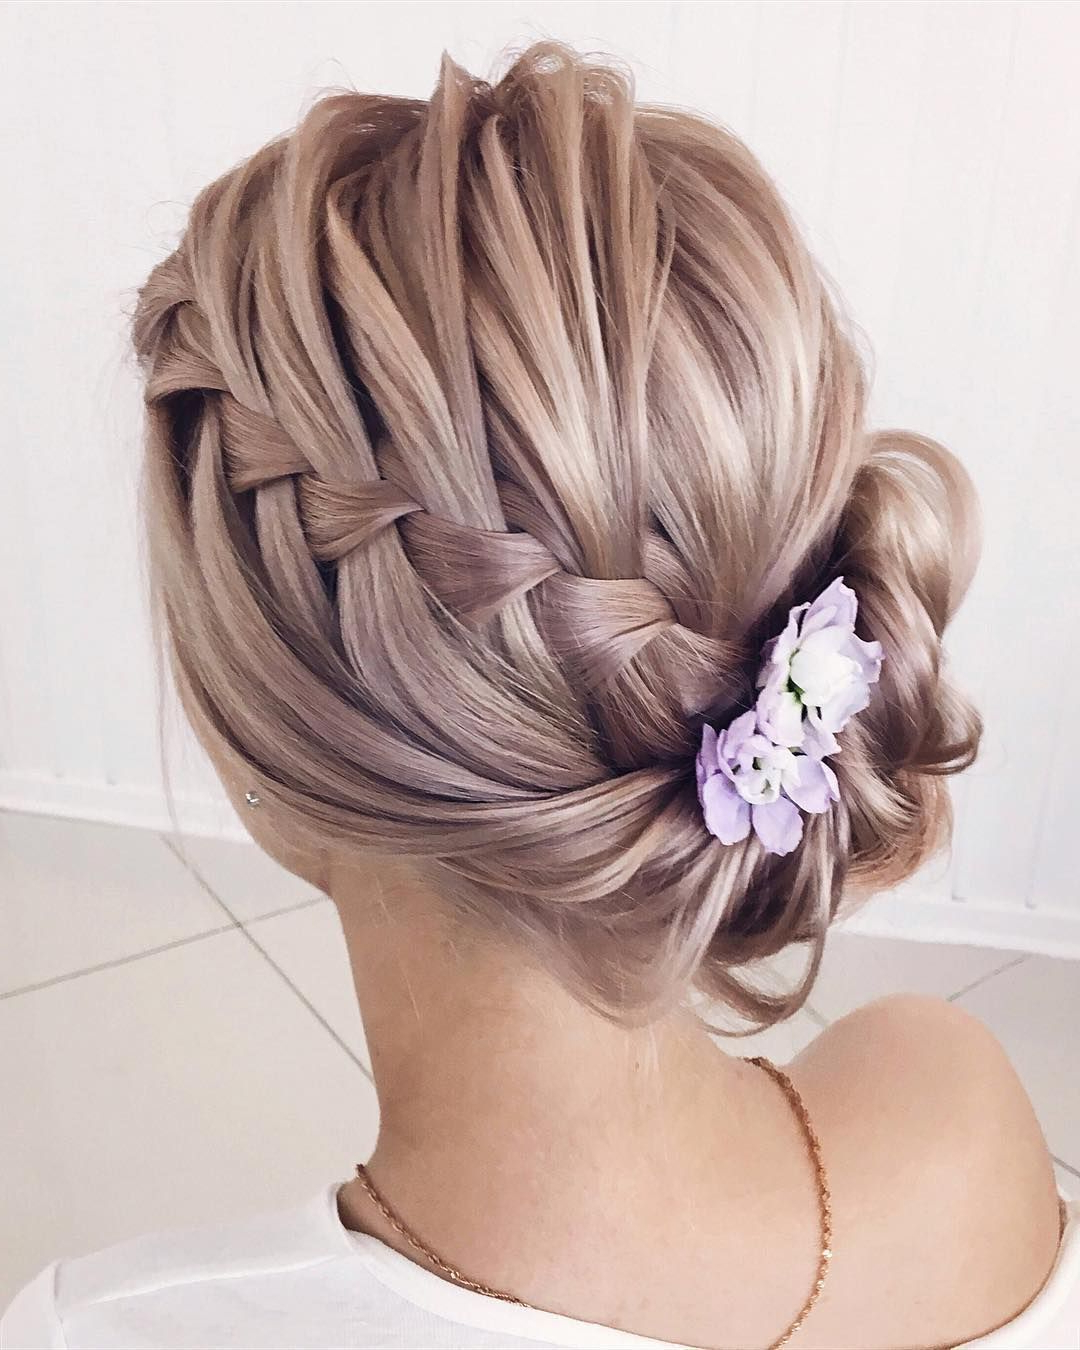 22 Beautiful Prom Hairstyles That'll Steal The Night – Best Prom Within Newest Braided Lavender Bridal Hairstyles (View 2 of 20)